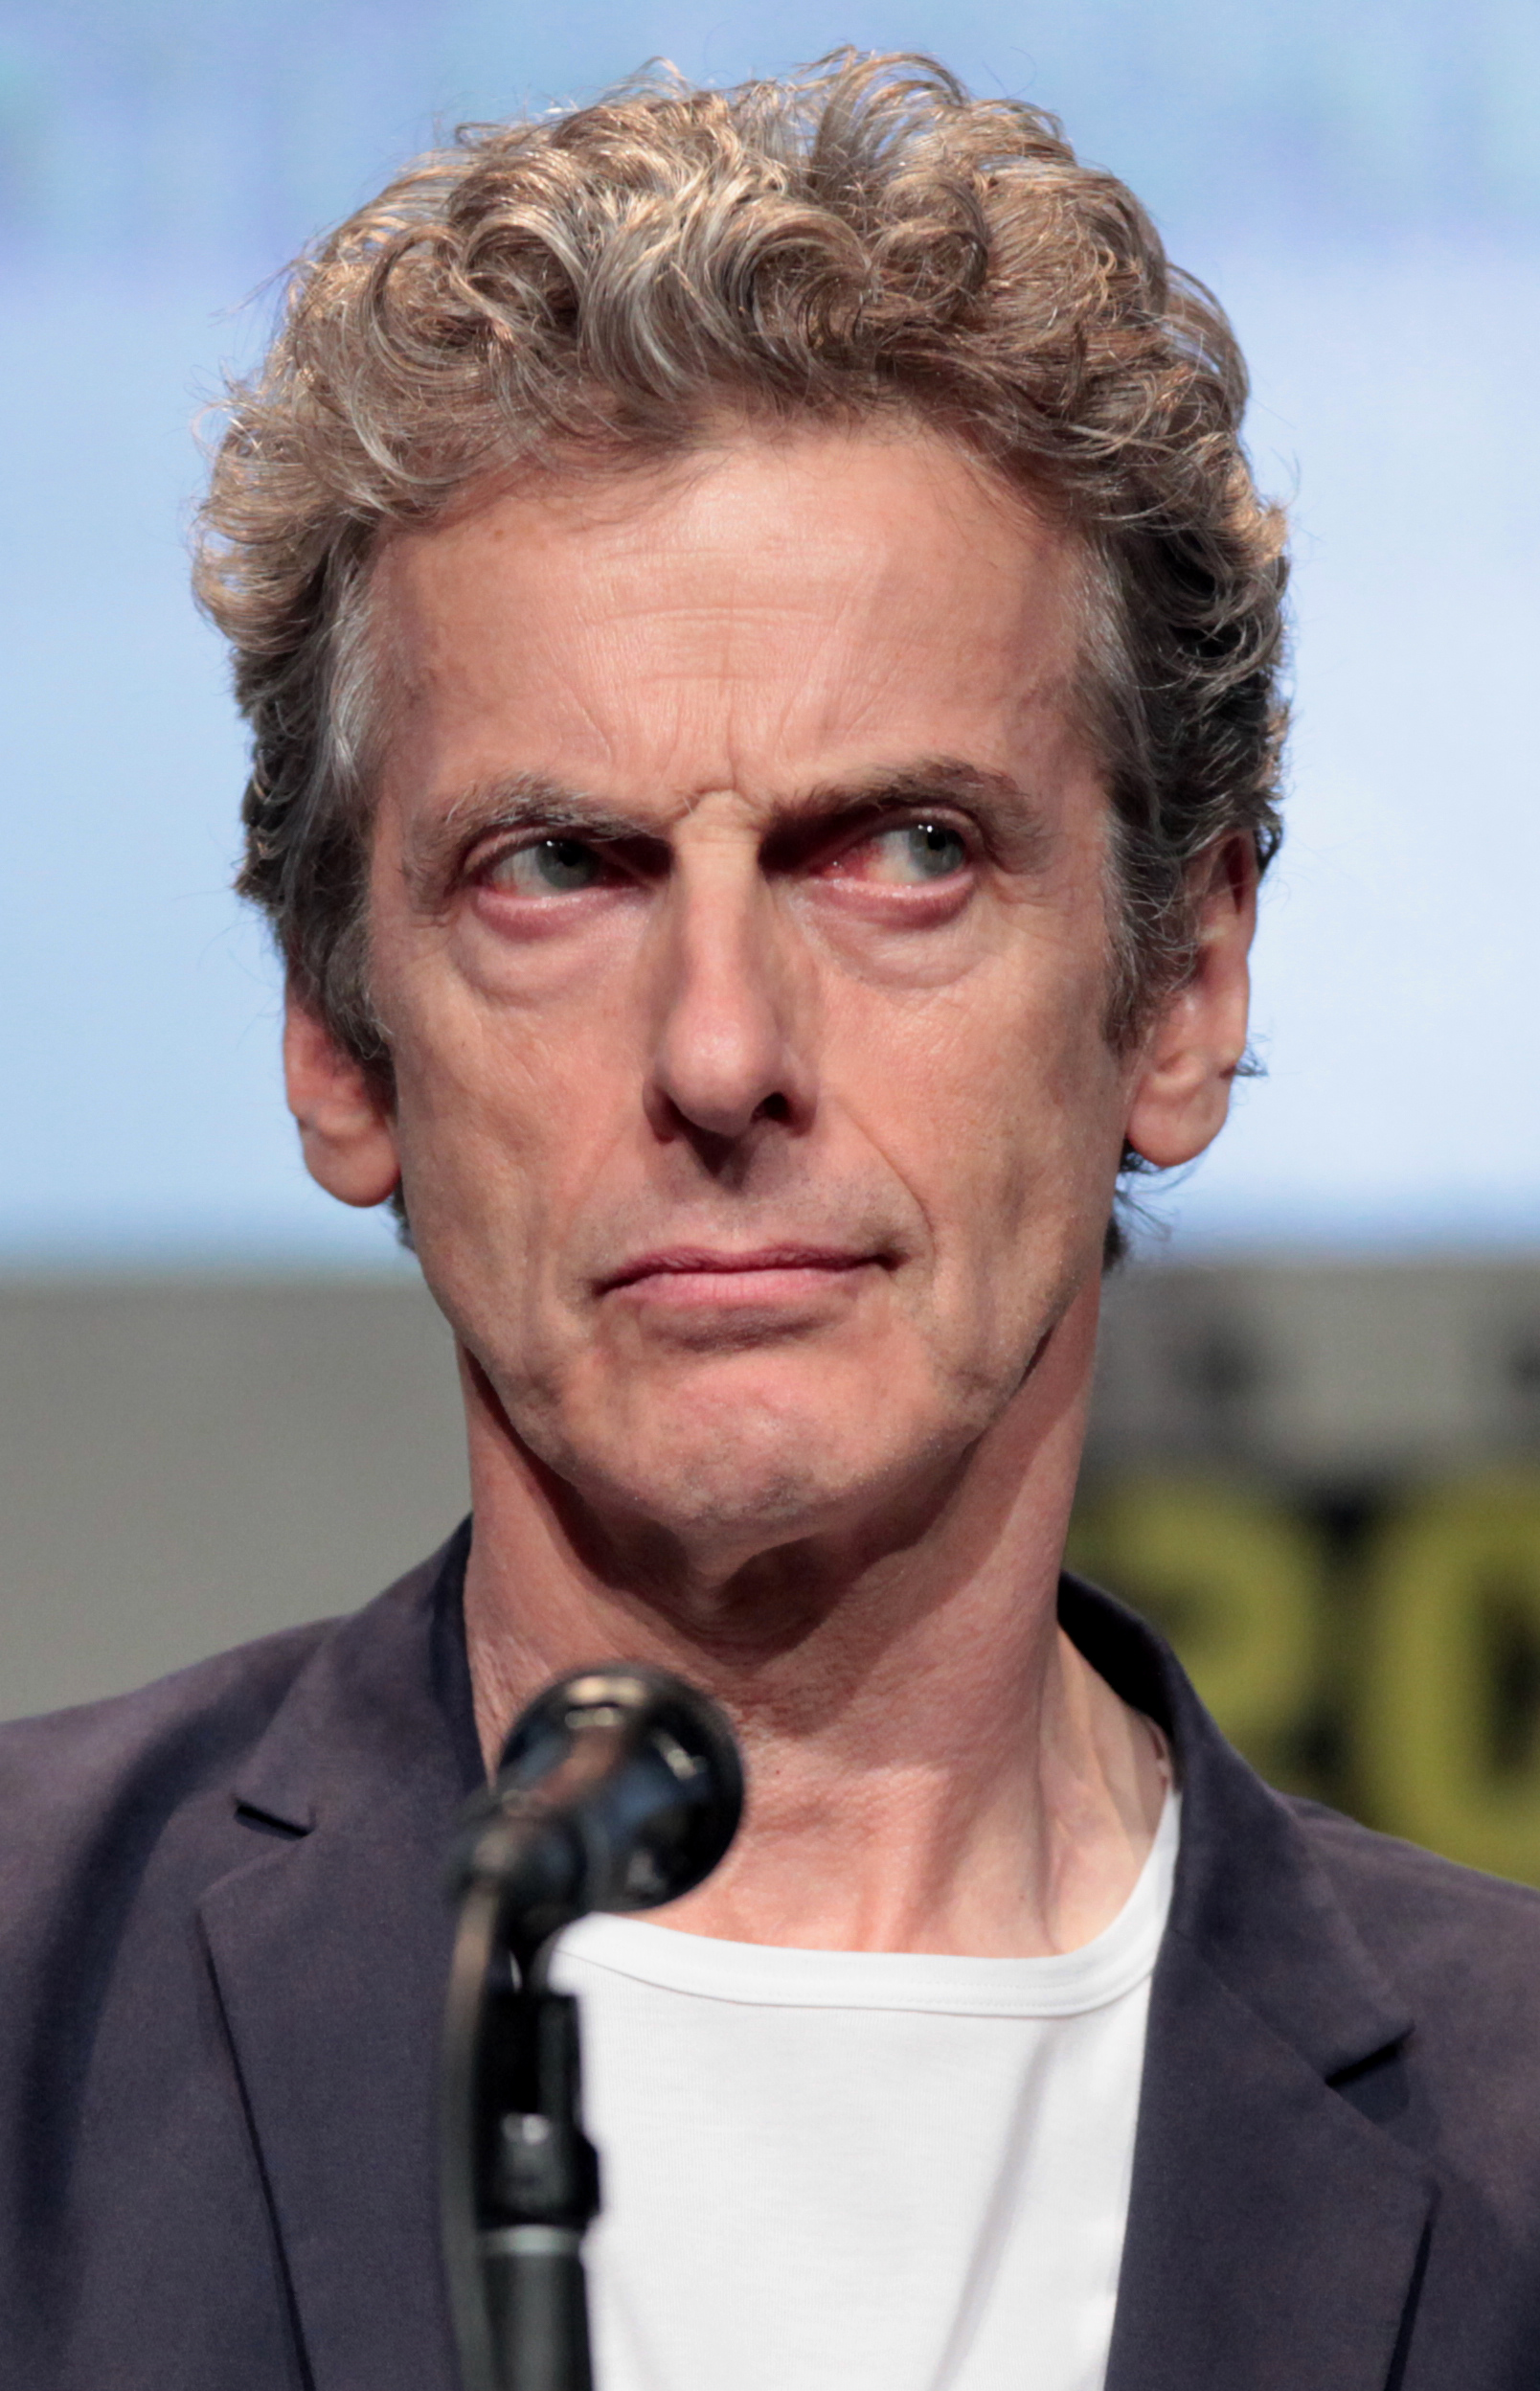 Peter Capaldi on oscar nominations best picture